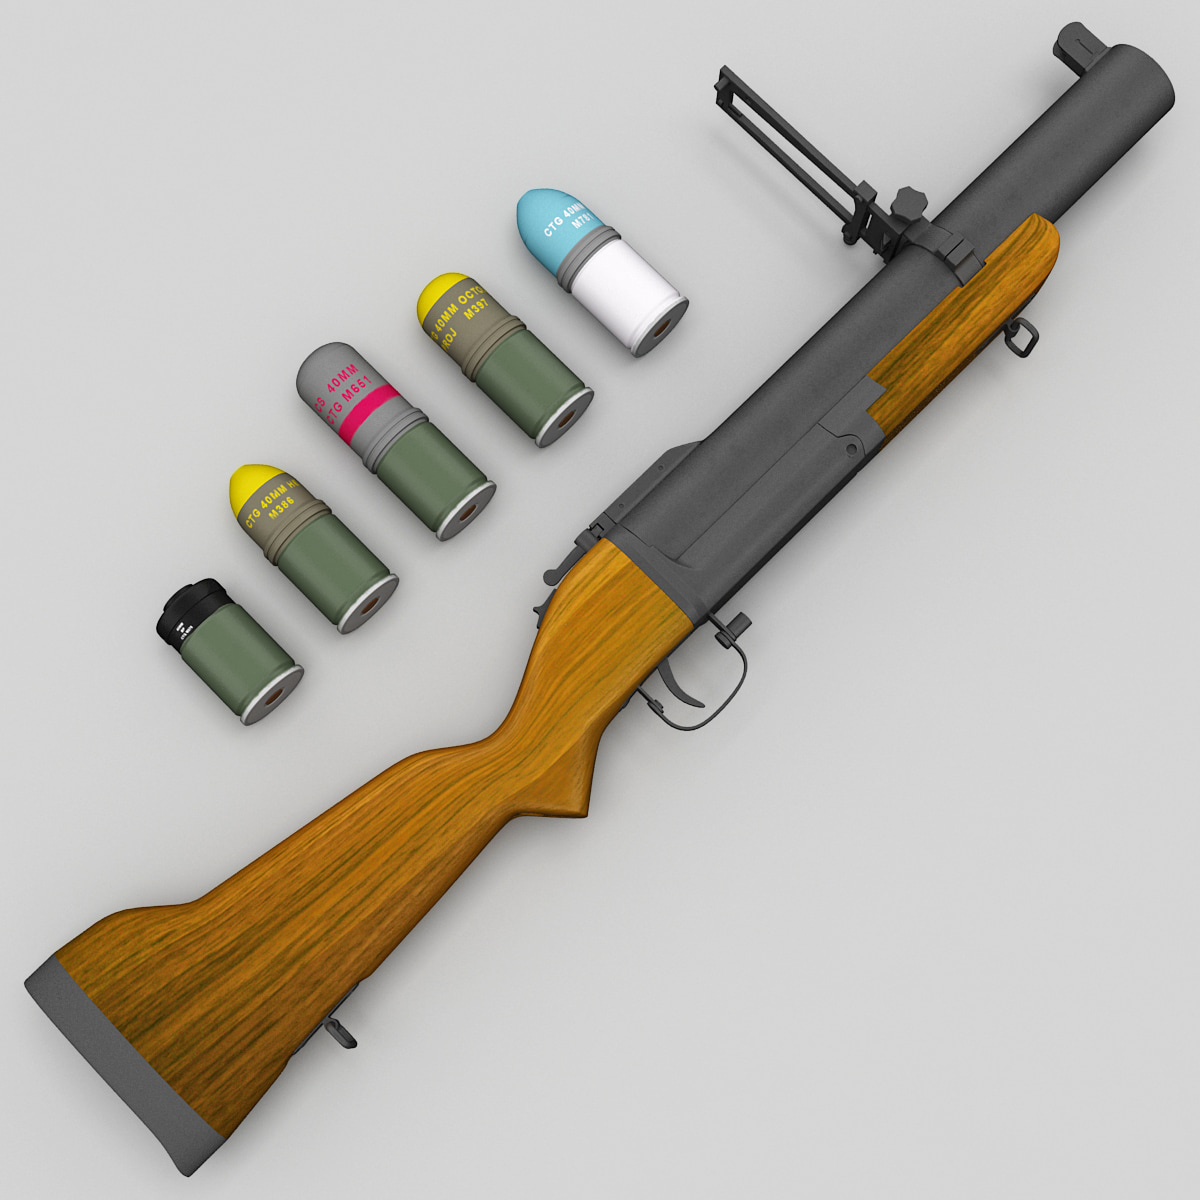 M79_Grenade_Launcher_Collection_0001.jpg